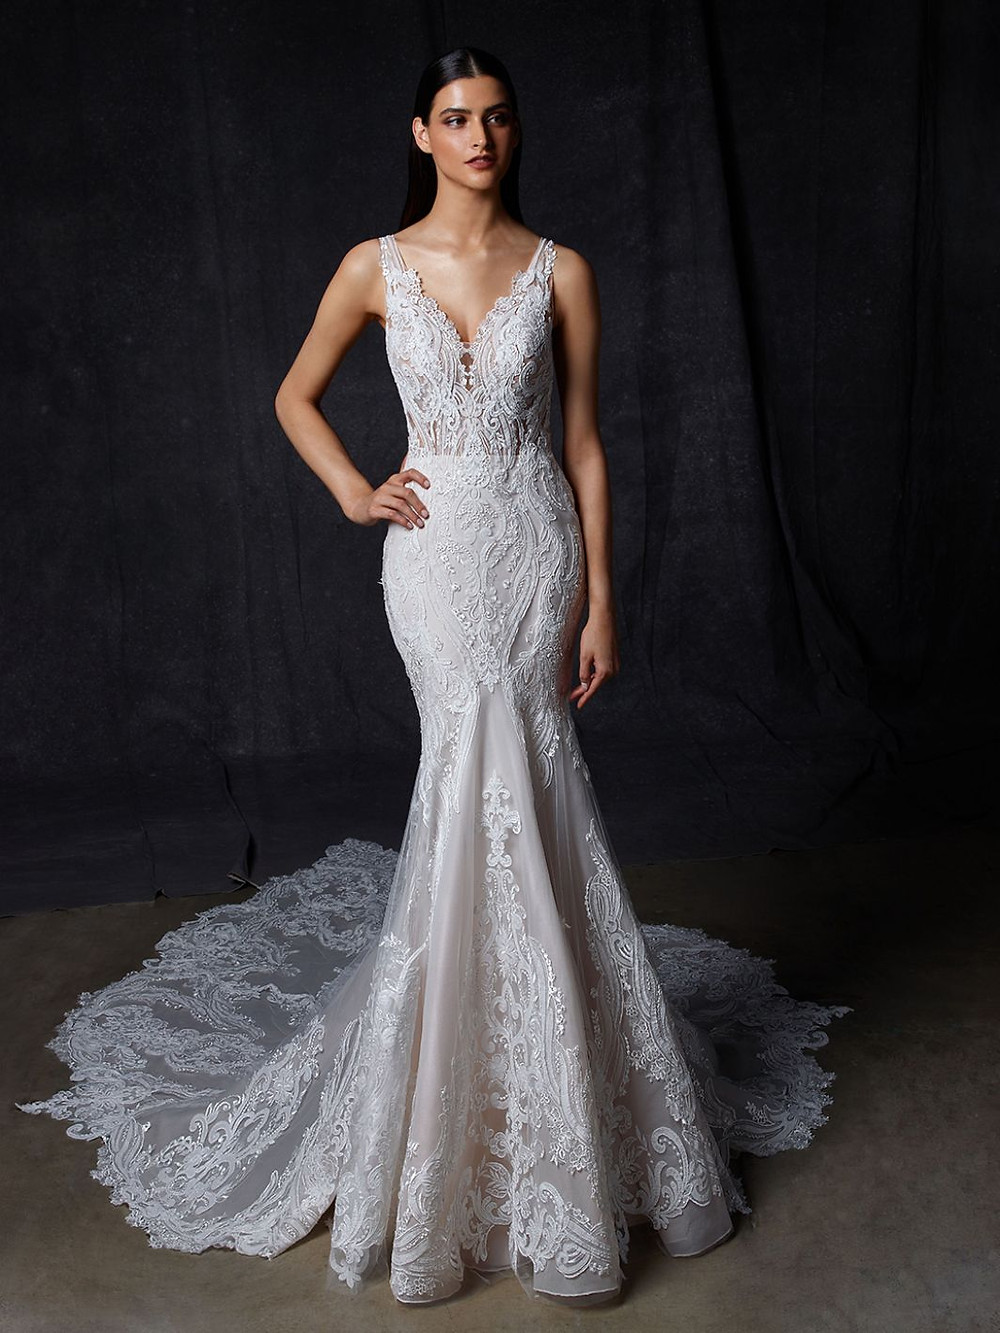 An Enzoani lace, v neck mermaid wedding dress with straps and a long train